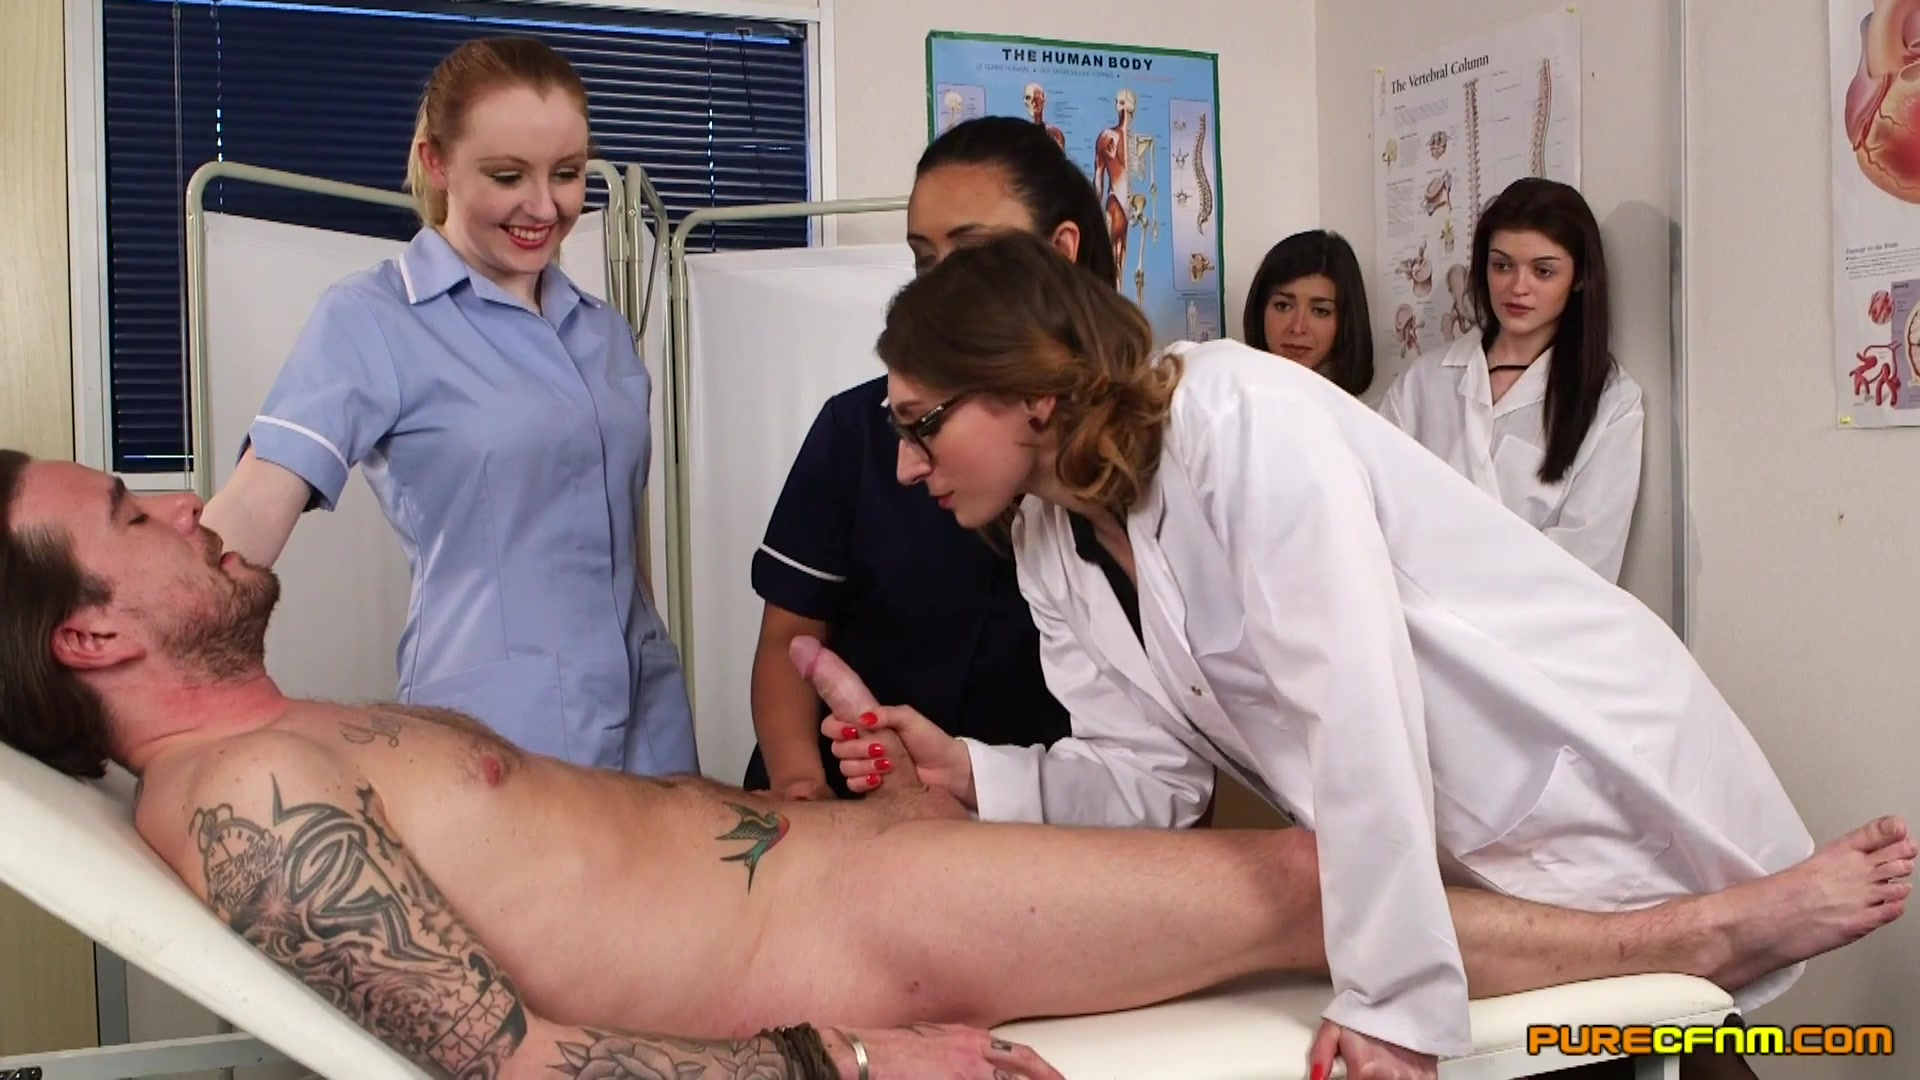 lesbian time Piercing students first